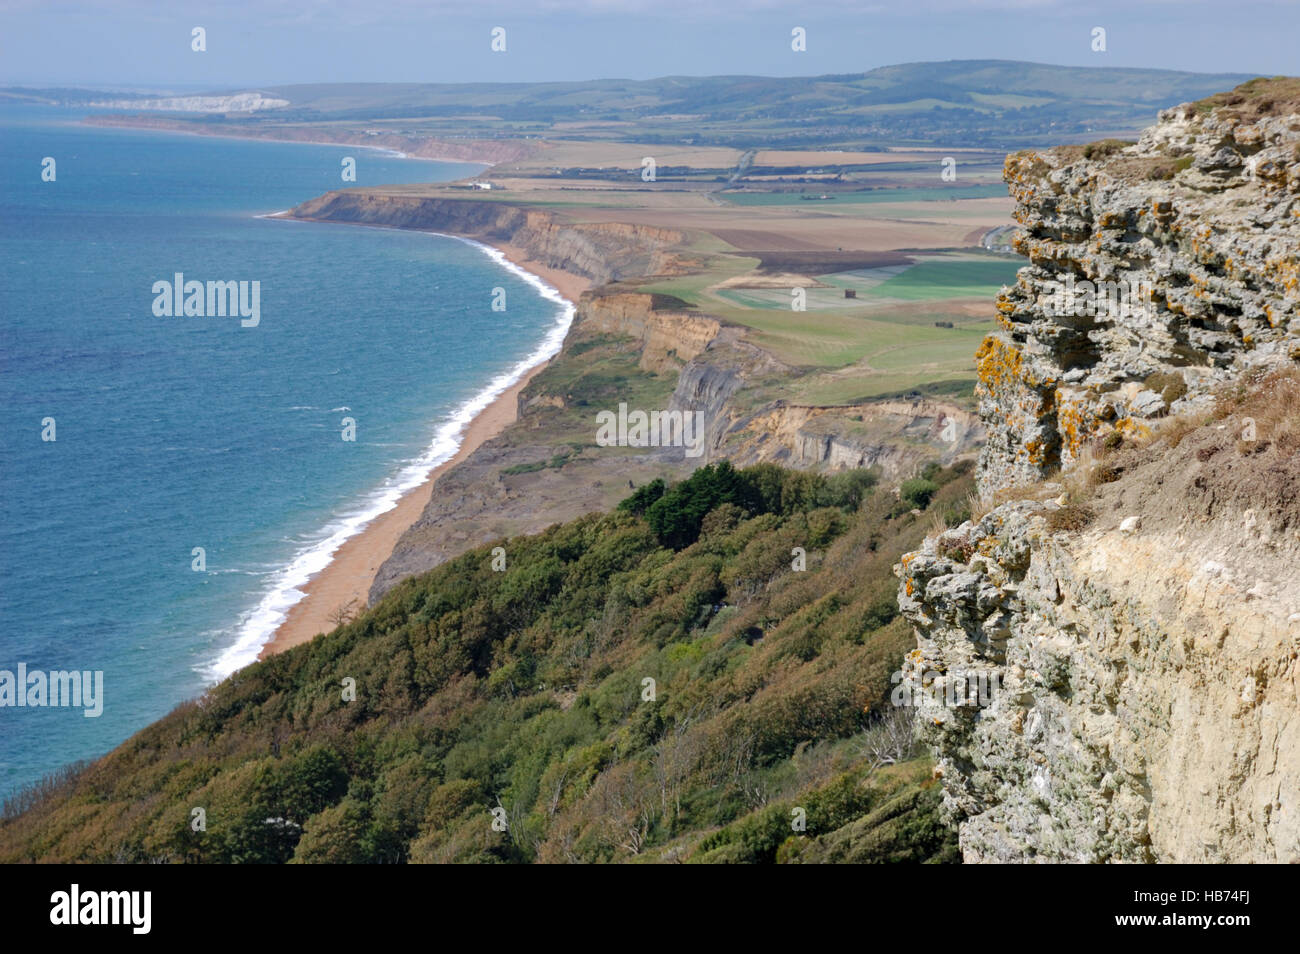 Looking over the landslip at Blackgang Chine and Whale Chine on Chale Bay, Isle of Wight Stock Photo